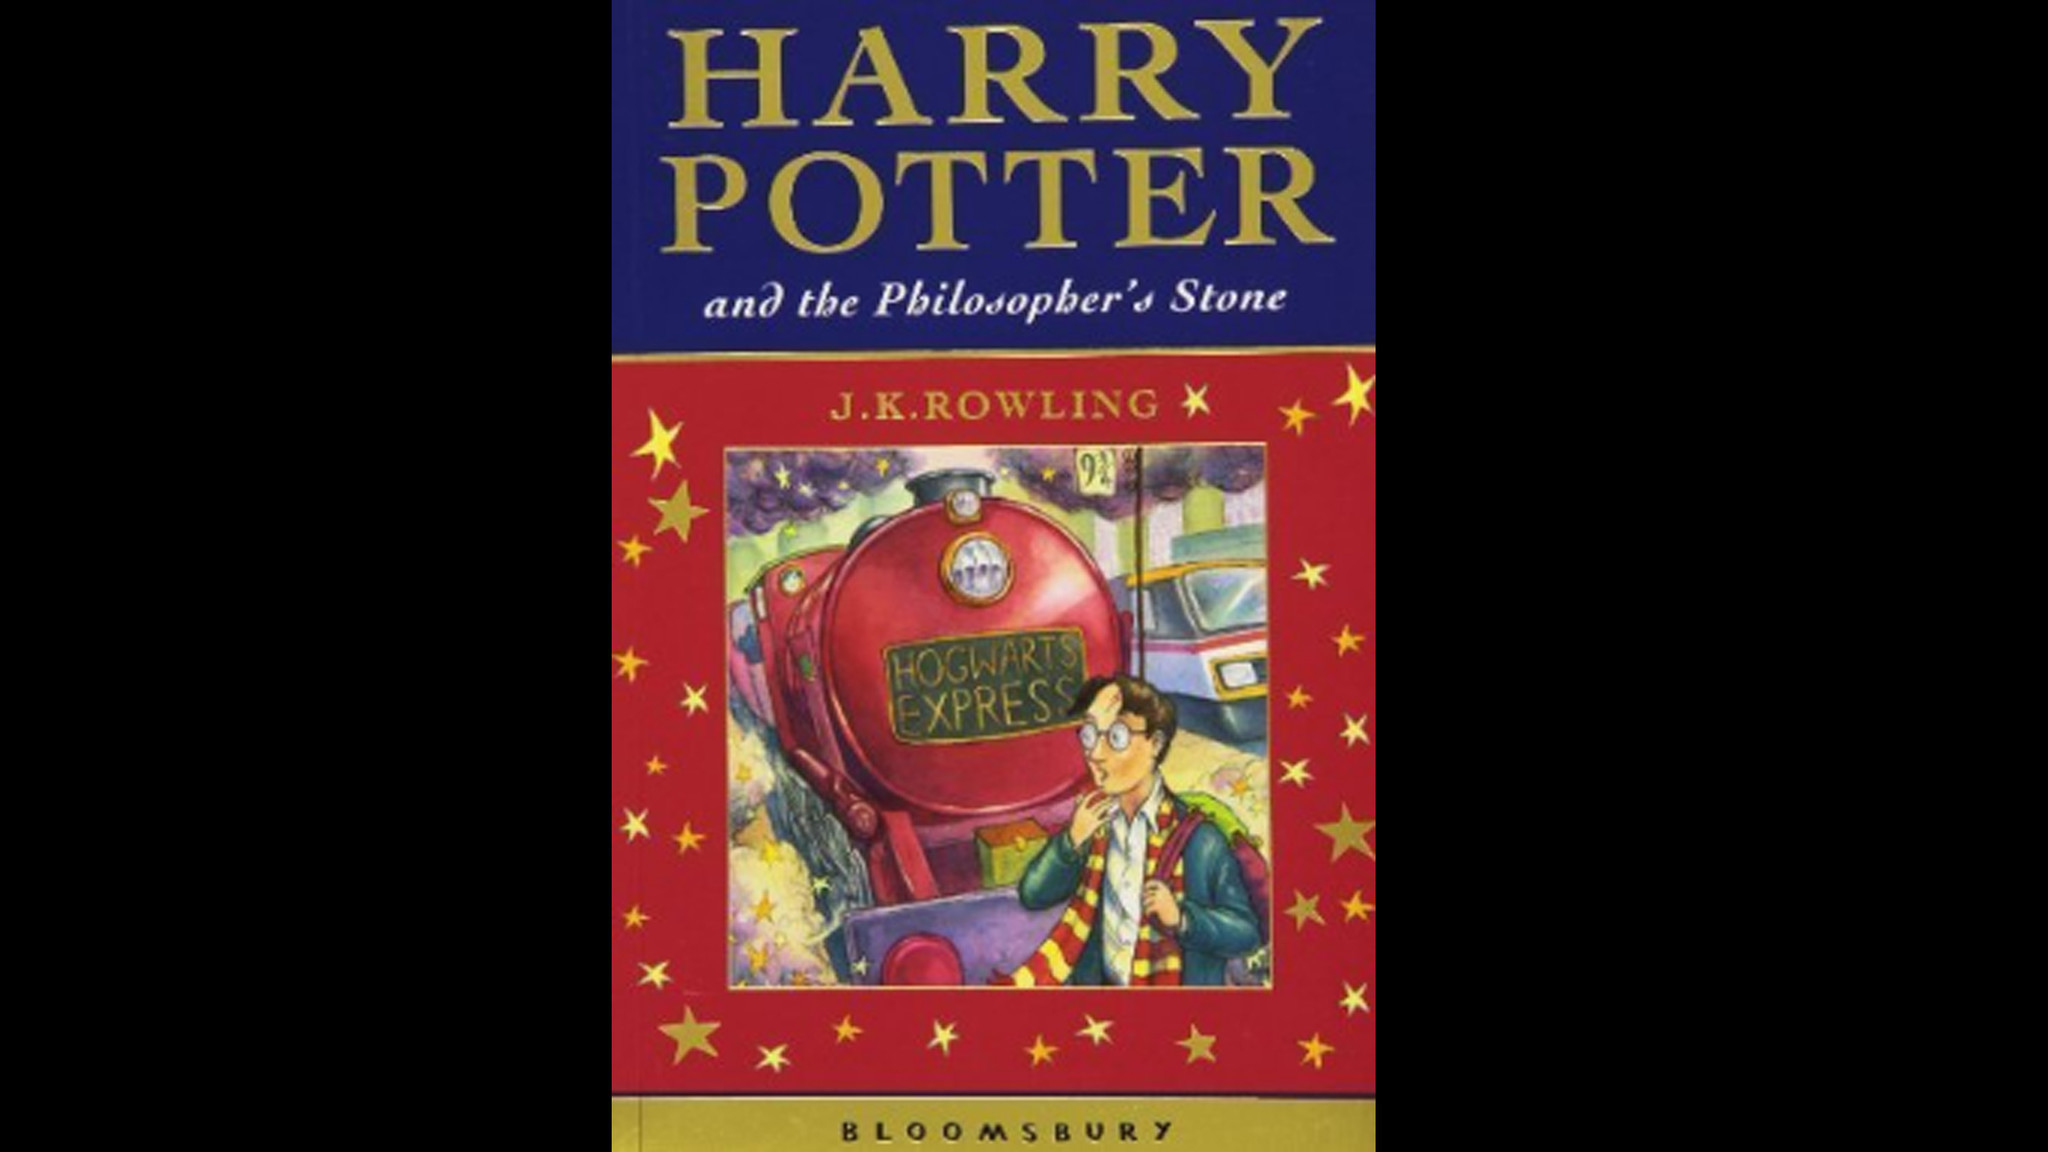 Harry Potter Book Covers Different Countries : Harry potter book covers from around the world